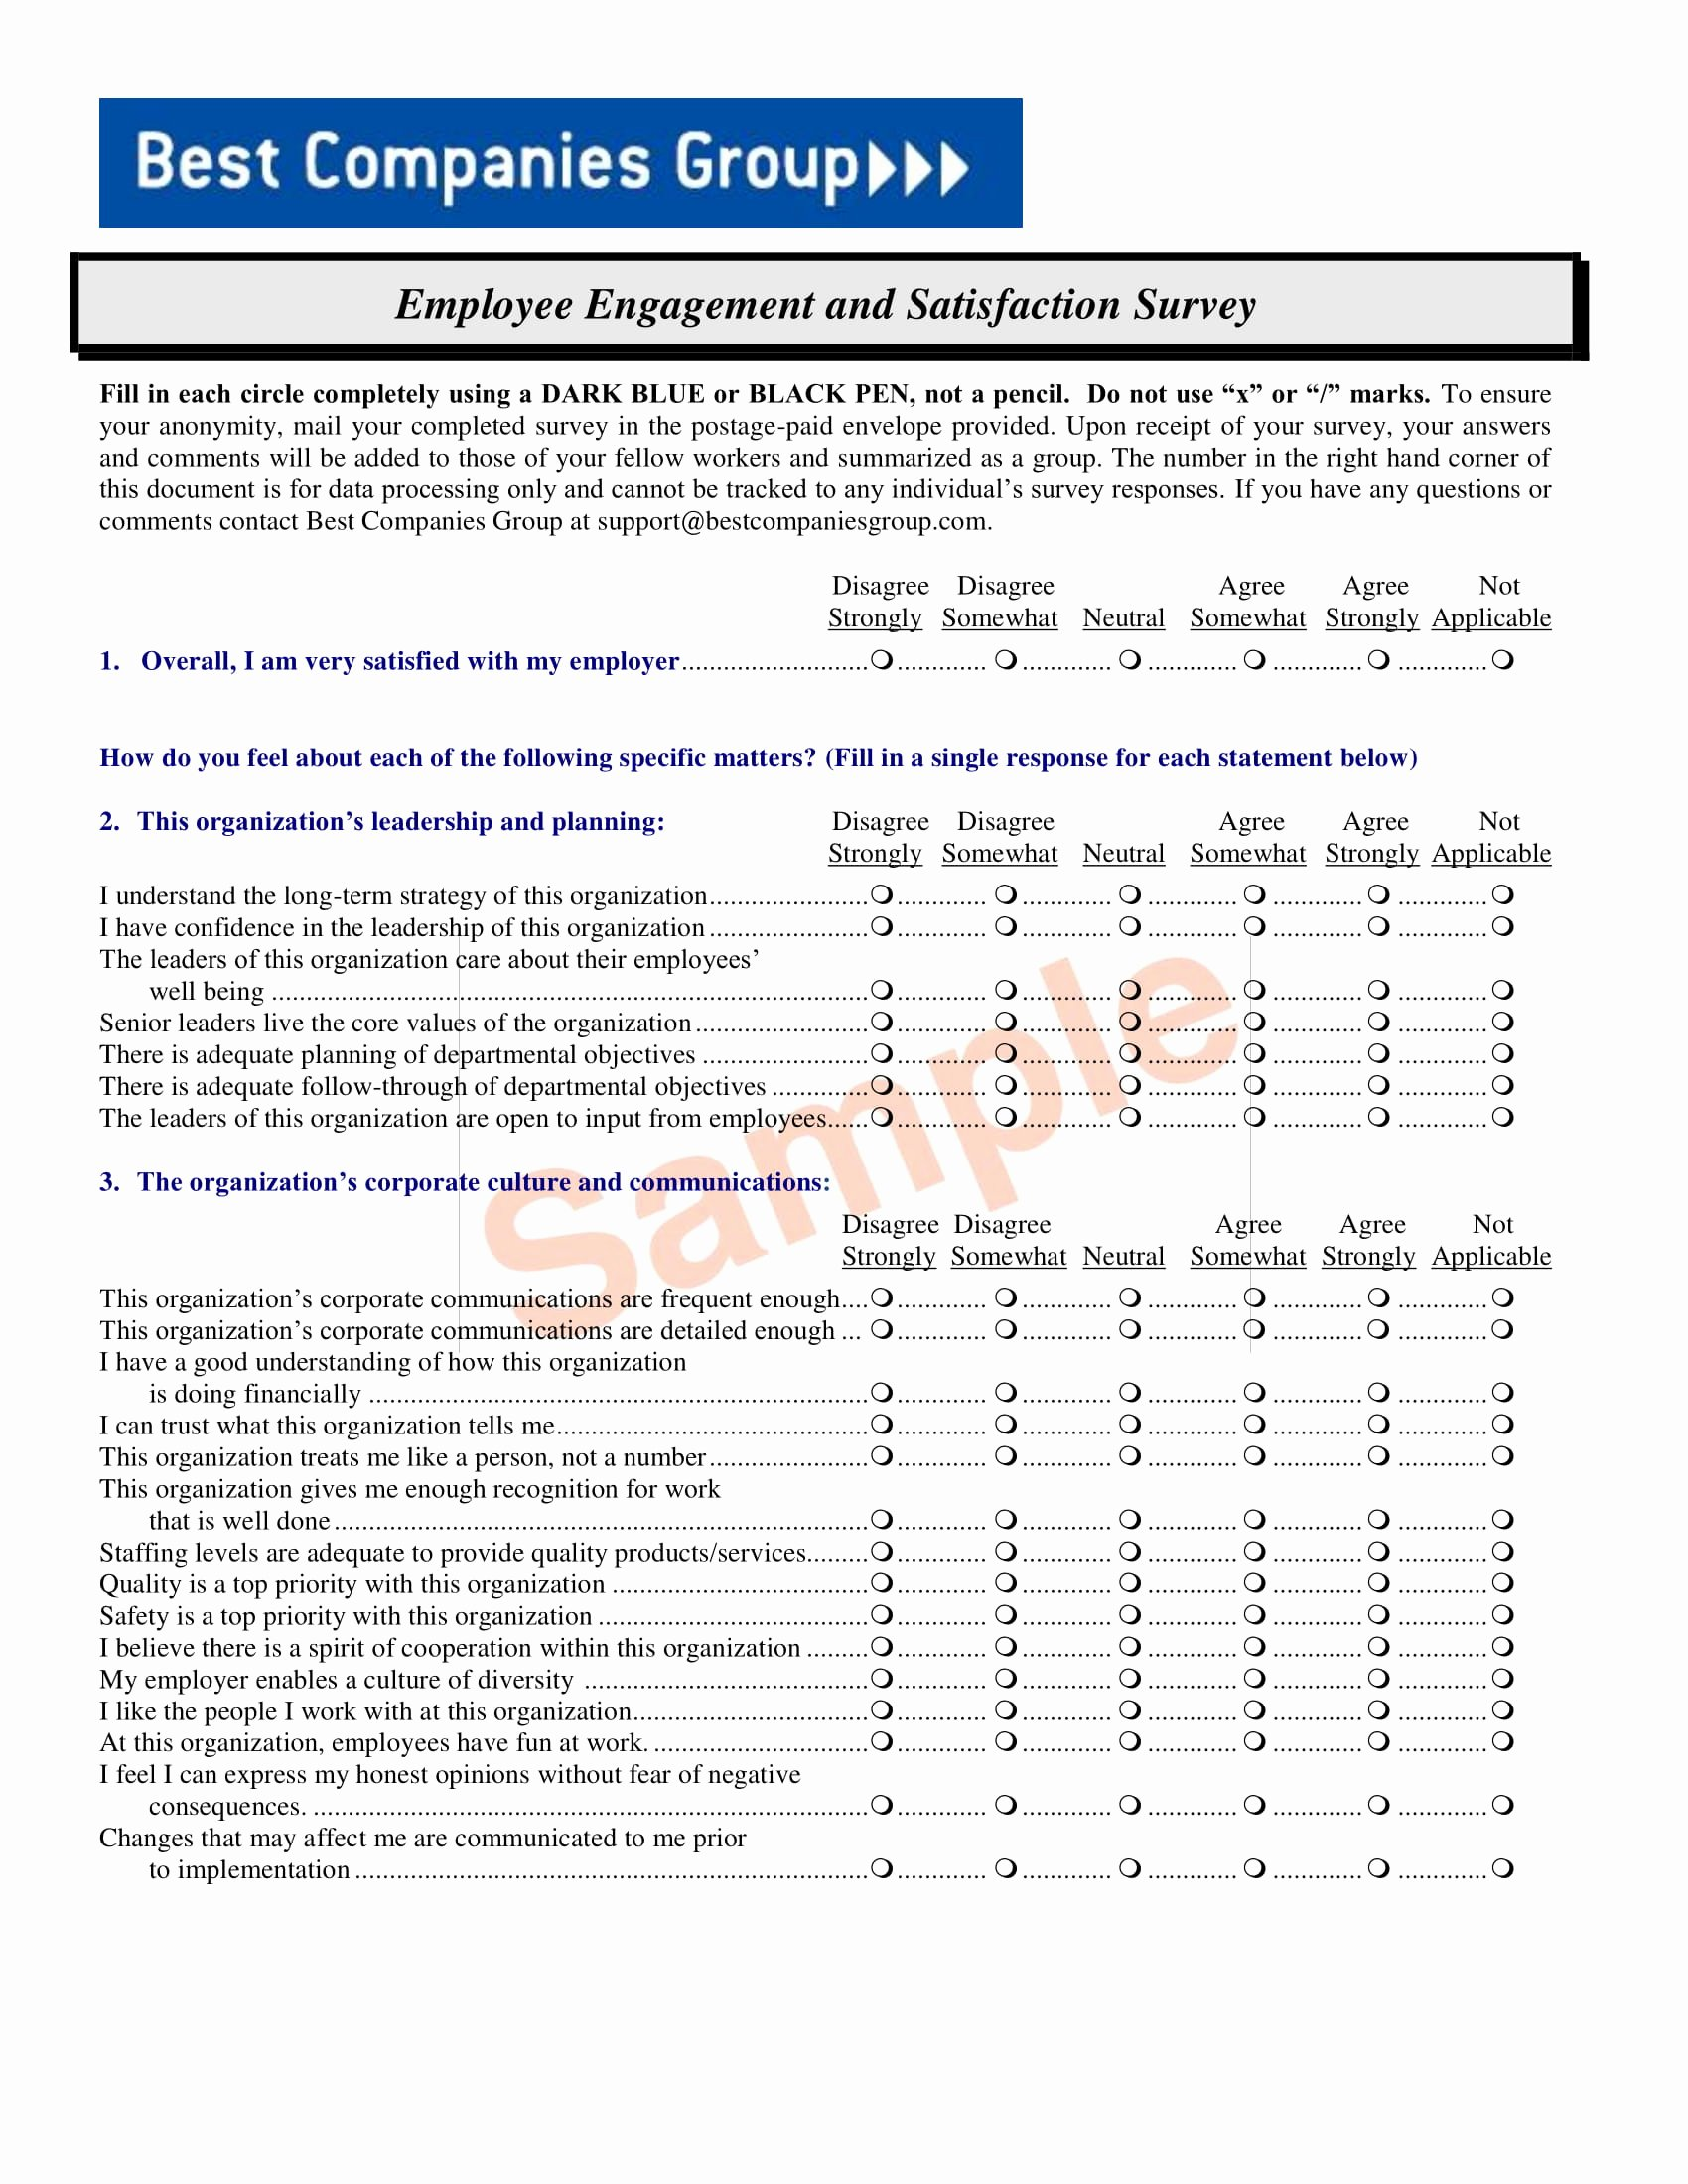 Employee Satisfaction Survey Questionnaire Doc Inspirational 14 Employee Satisfaction Survey form Examples Pdf Doc